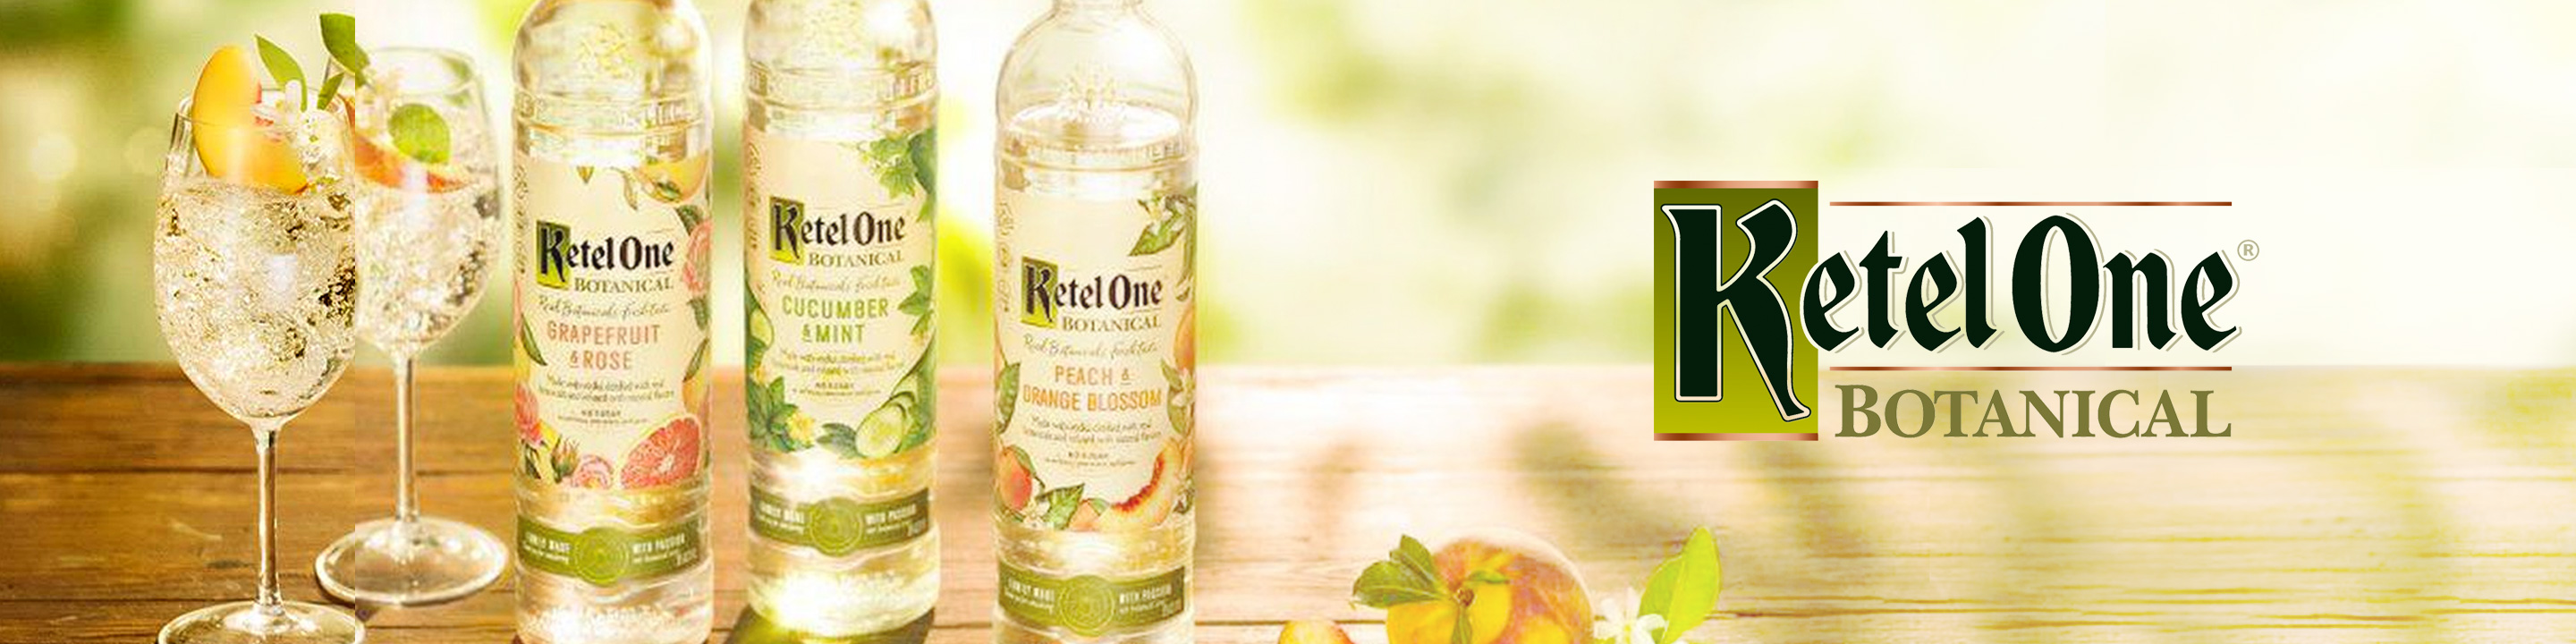 Ketel One Vodka is a truly exceptional super-premium vodka with a rich family heritage that stretches back over 11 generations. It is made by the famous Nolet distilling family who have been crafting fine spirits for 325 years.  Buy Ketel One online now from nearby liquor stores via Minibar Delivery.